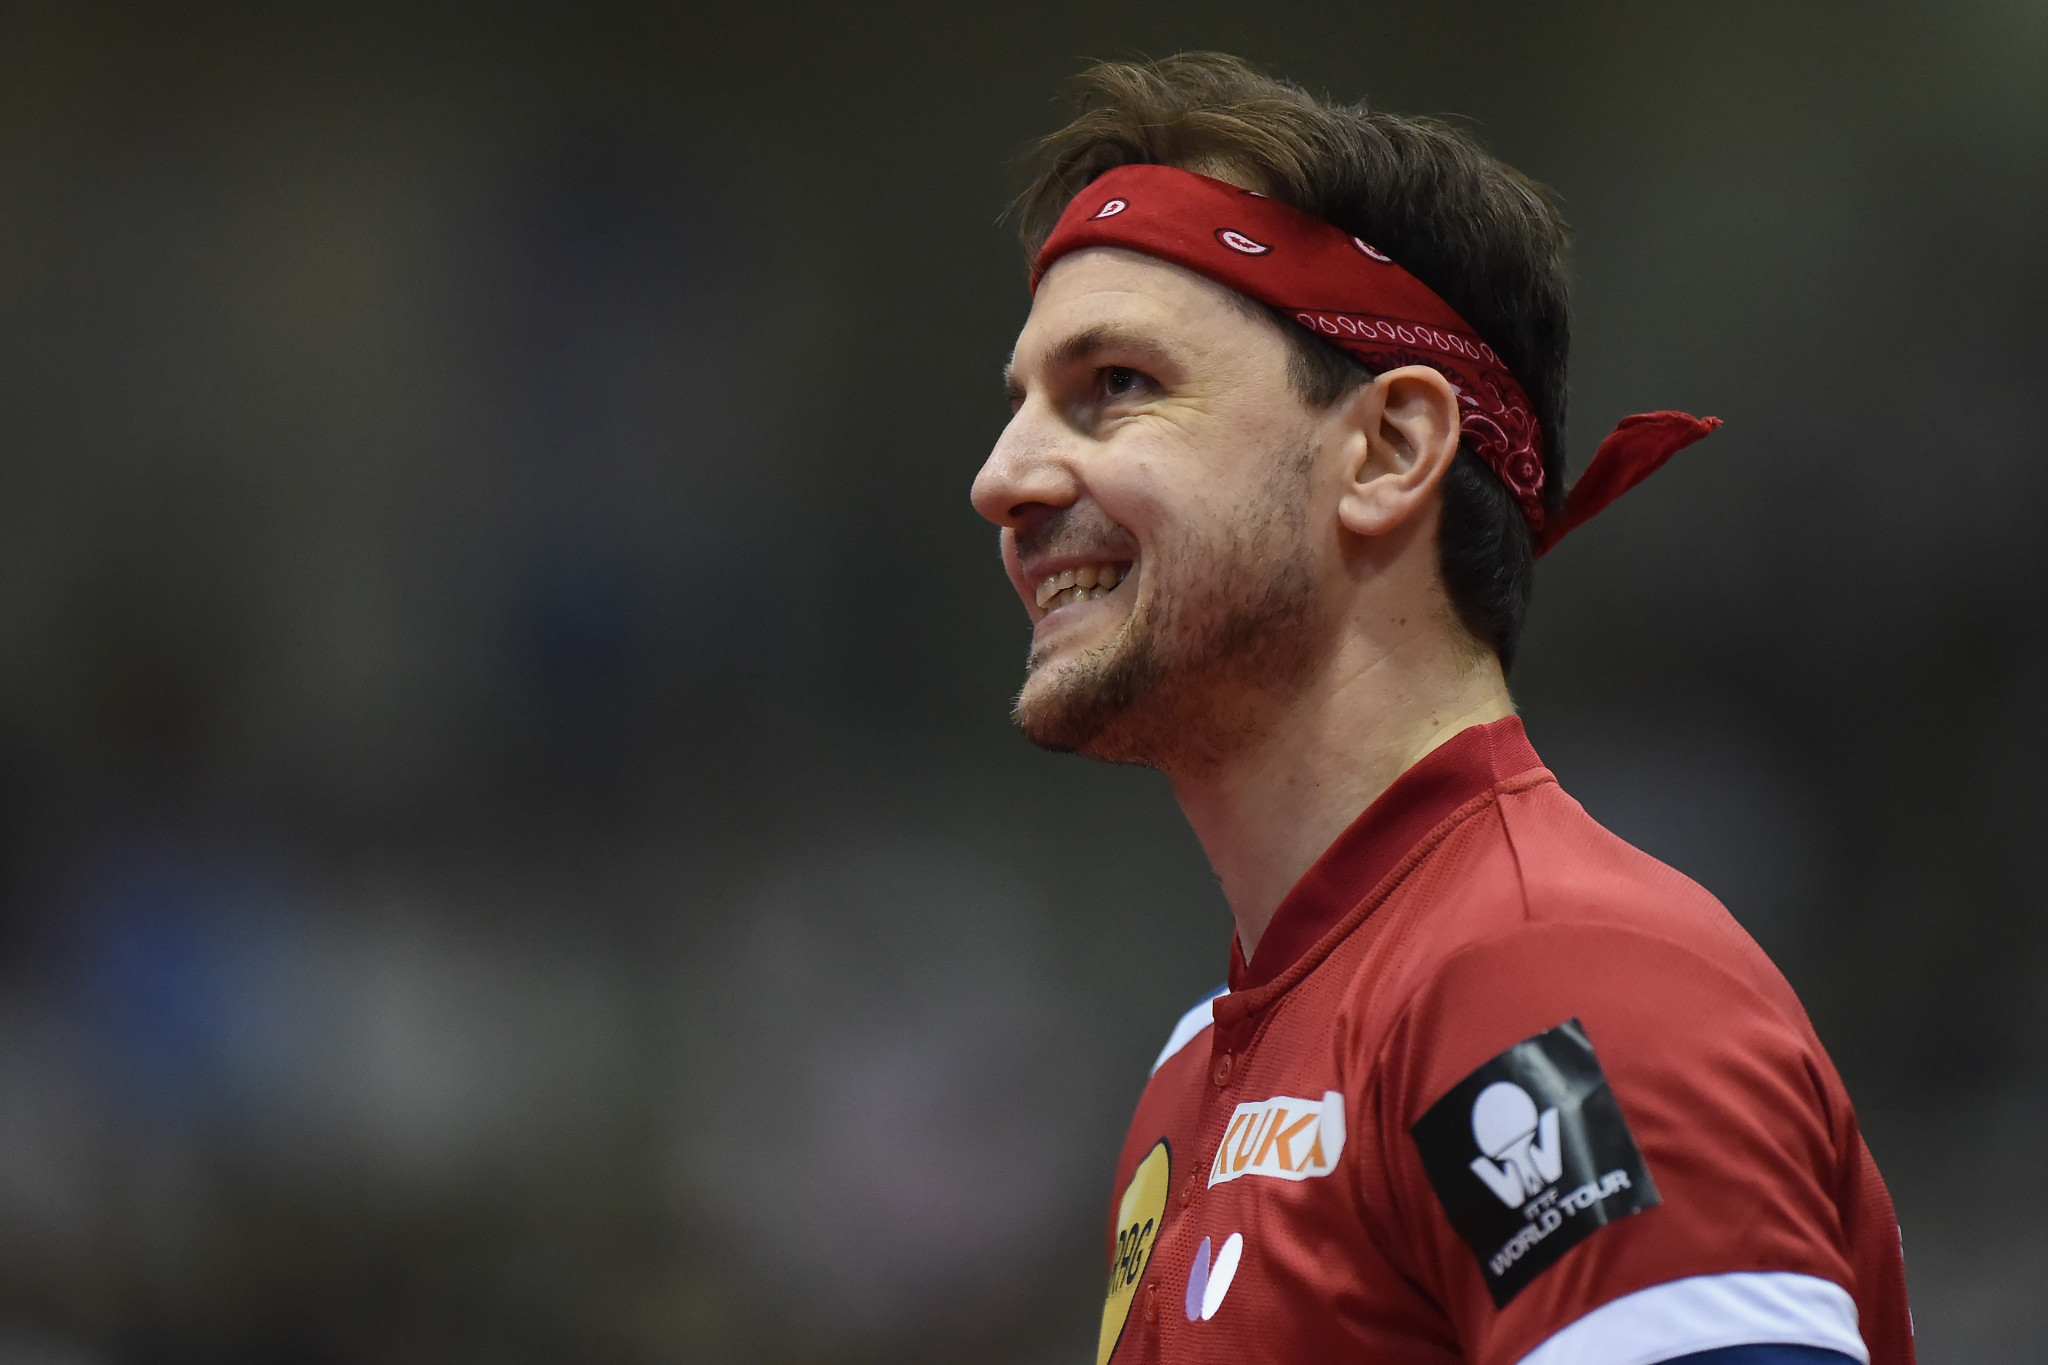 Germany's Timo Boll will claim a record-equalling seventh ETTU Top 16 Cup title if he triumphs again this year ©Getty Images